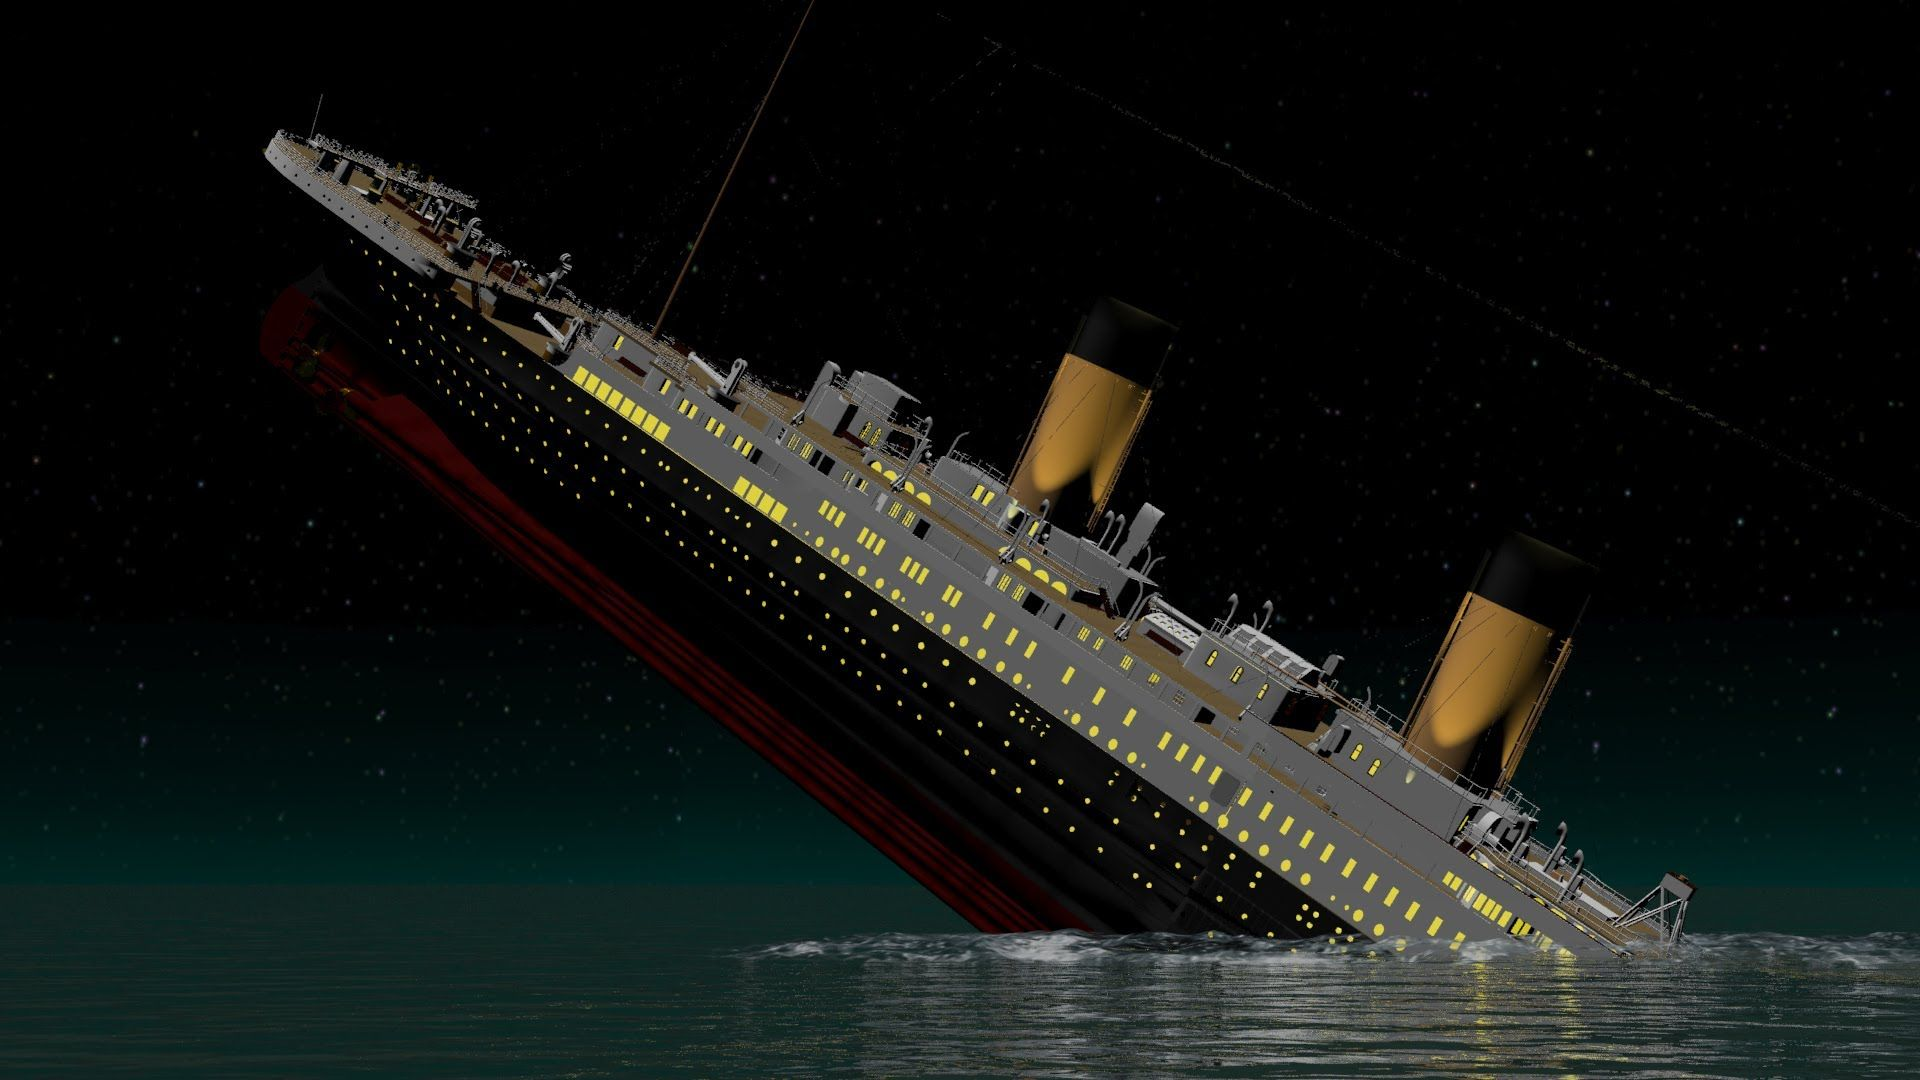 Roblox Britannic Sinking Ship Teaser Trailer Pictures Of The Titanic Before And After It Hit The Iceberg